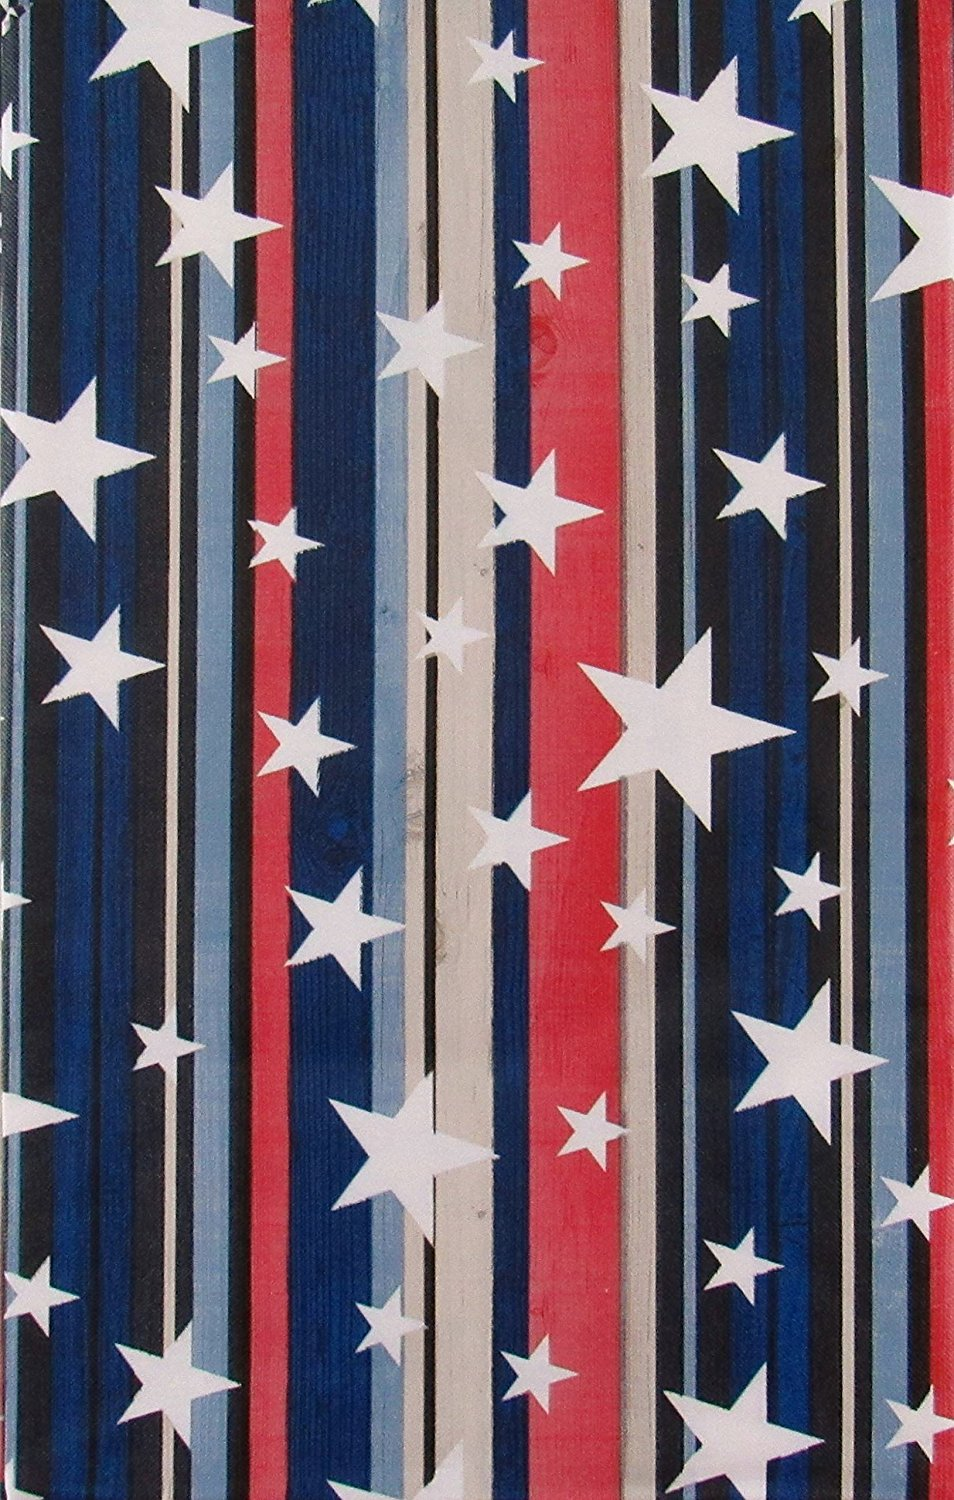 Patriotic Stars Red White Blue Stripes Vinyl Flannel Back Tablecloth Various Sizes